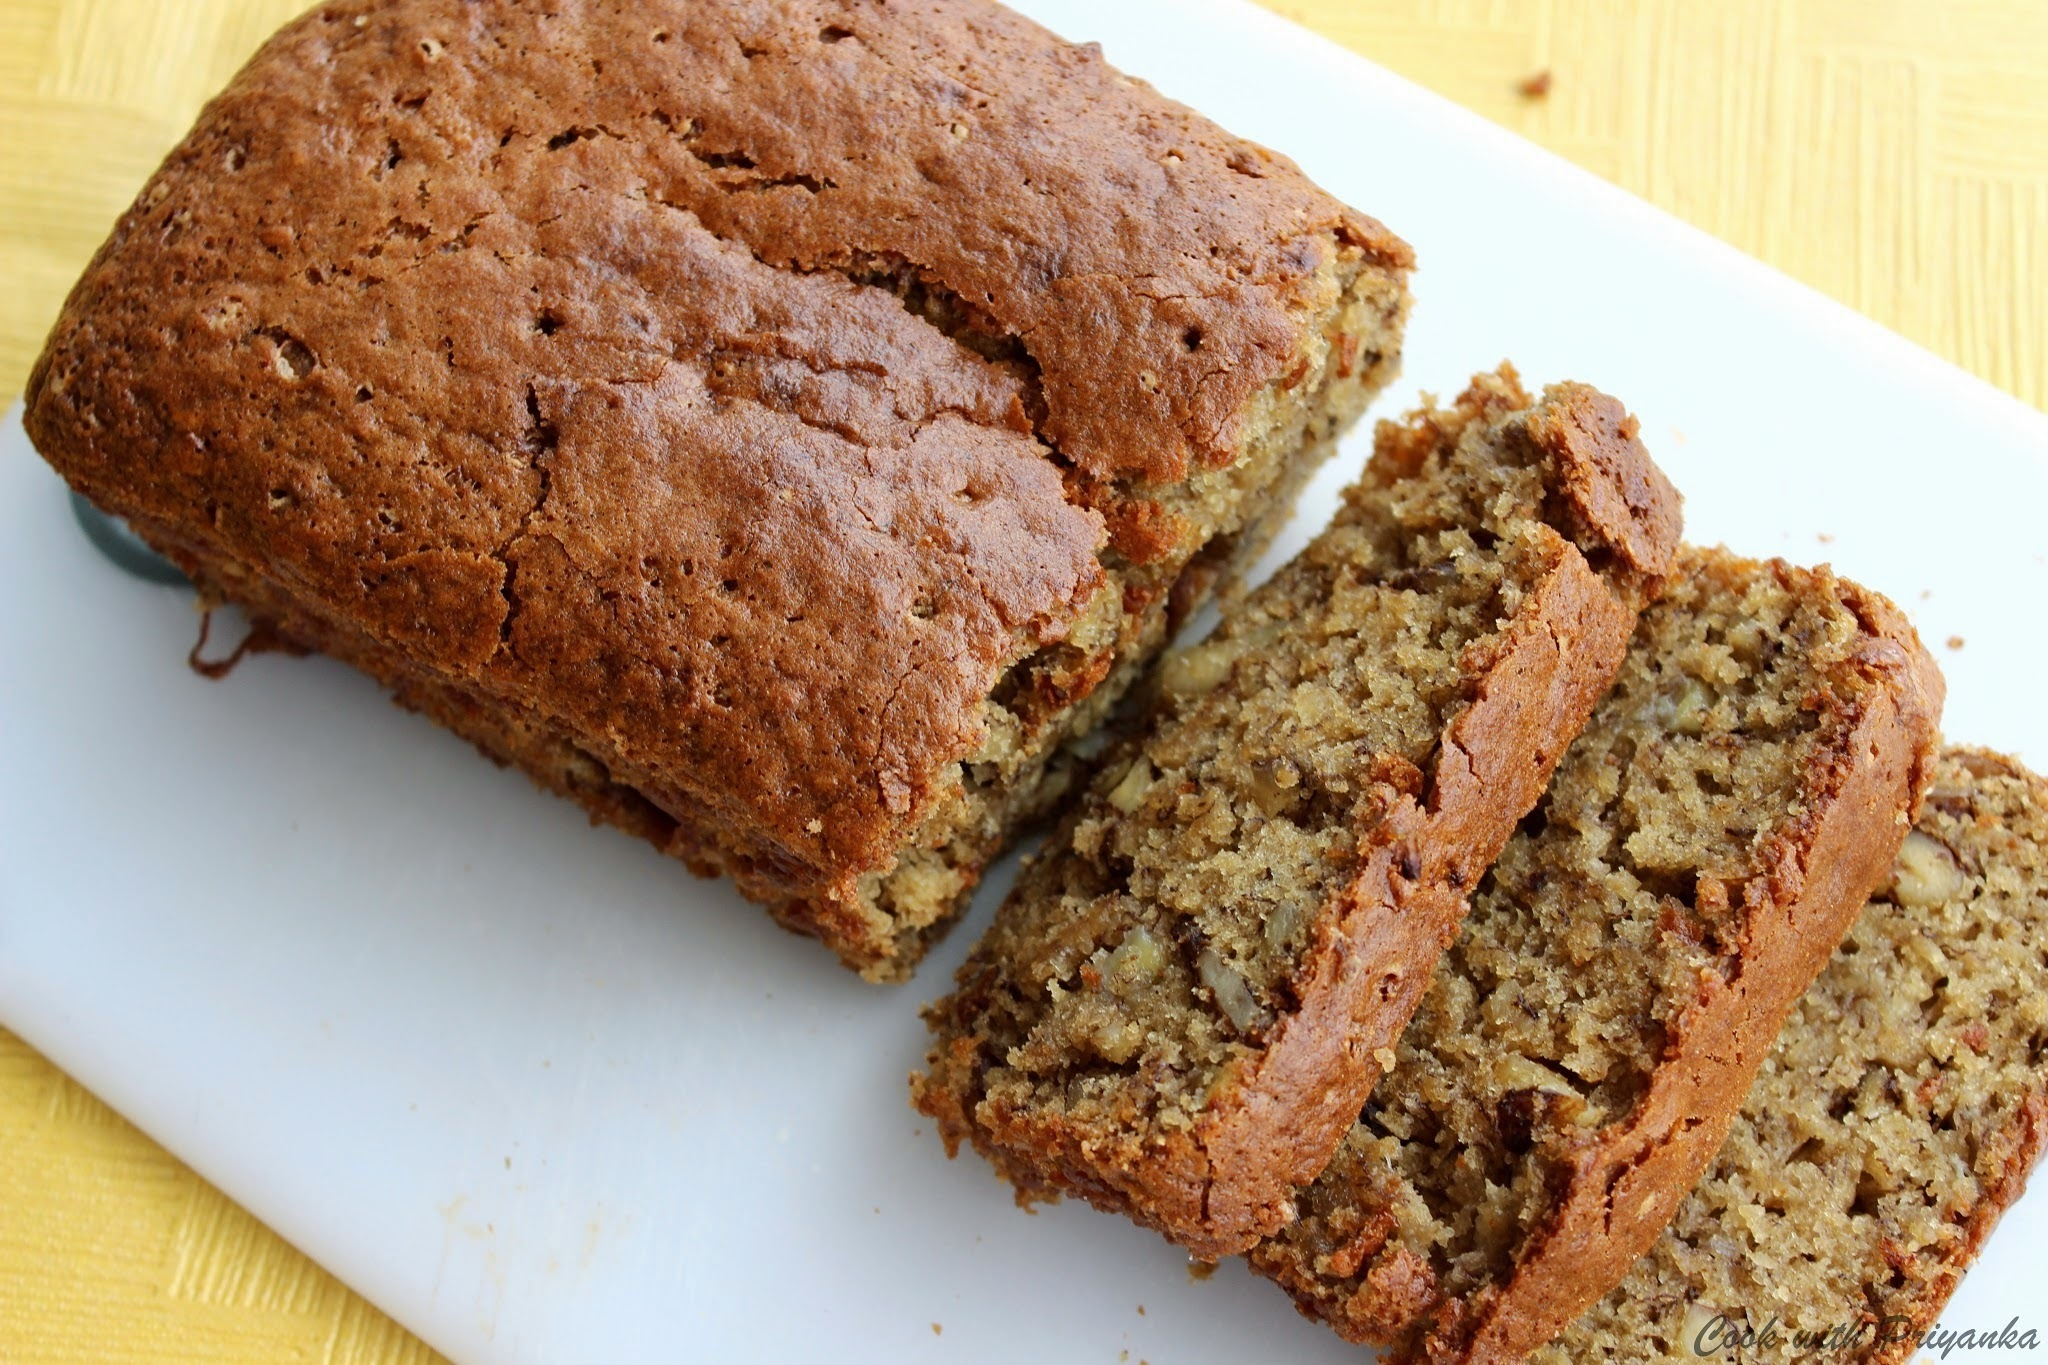 Banana & Walnut Cake (Eggless)